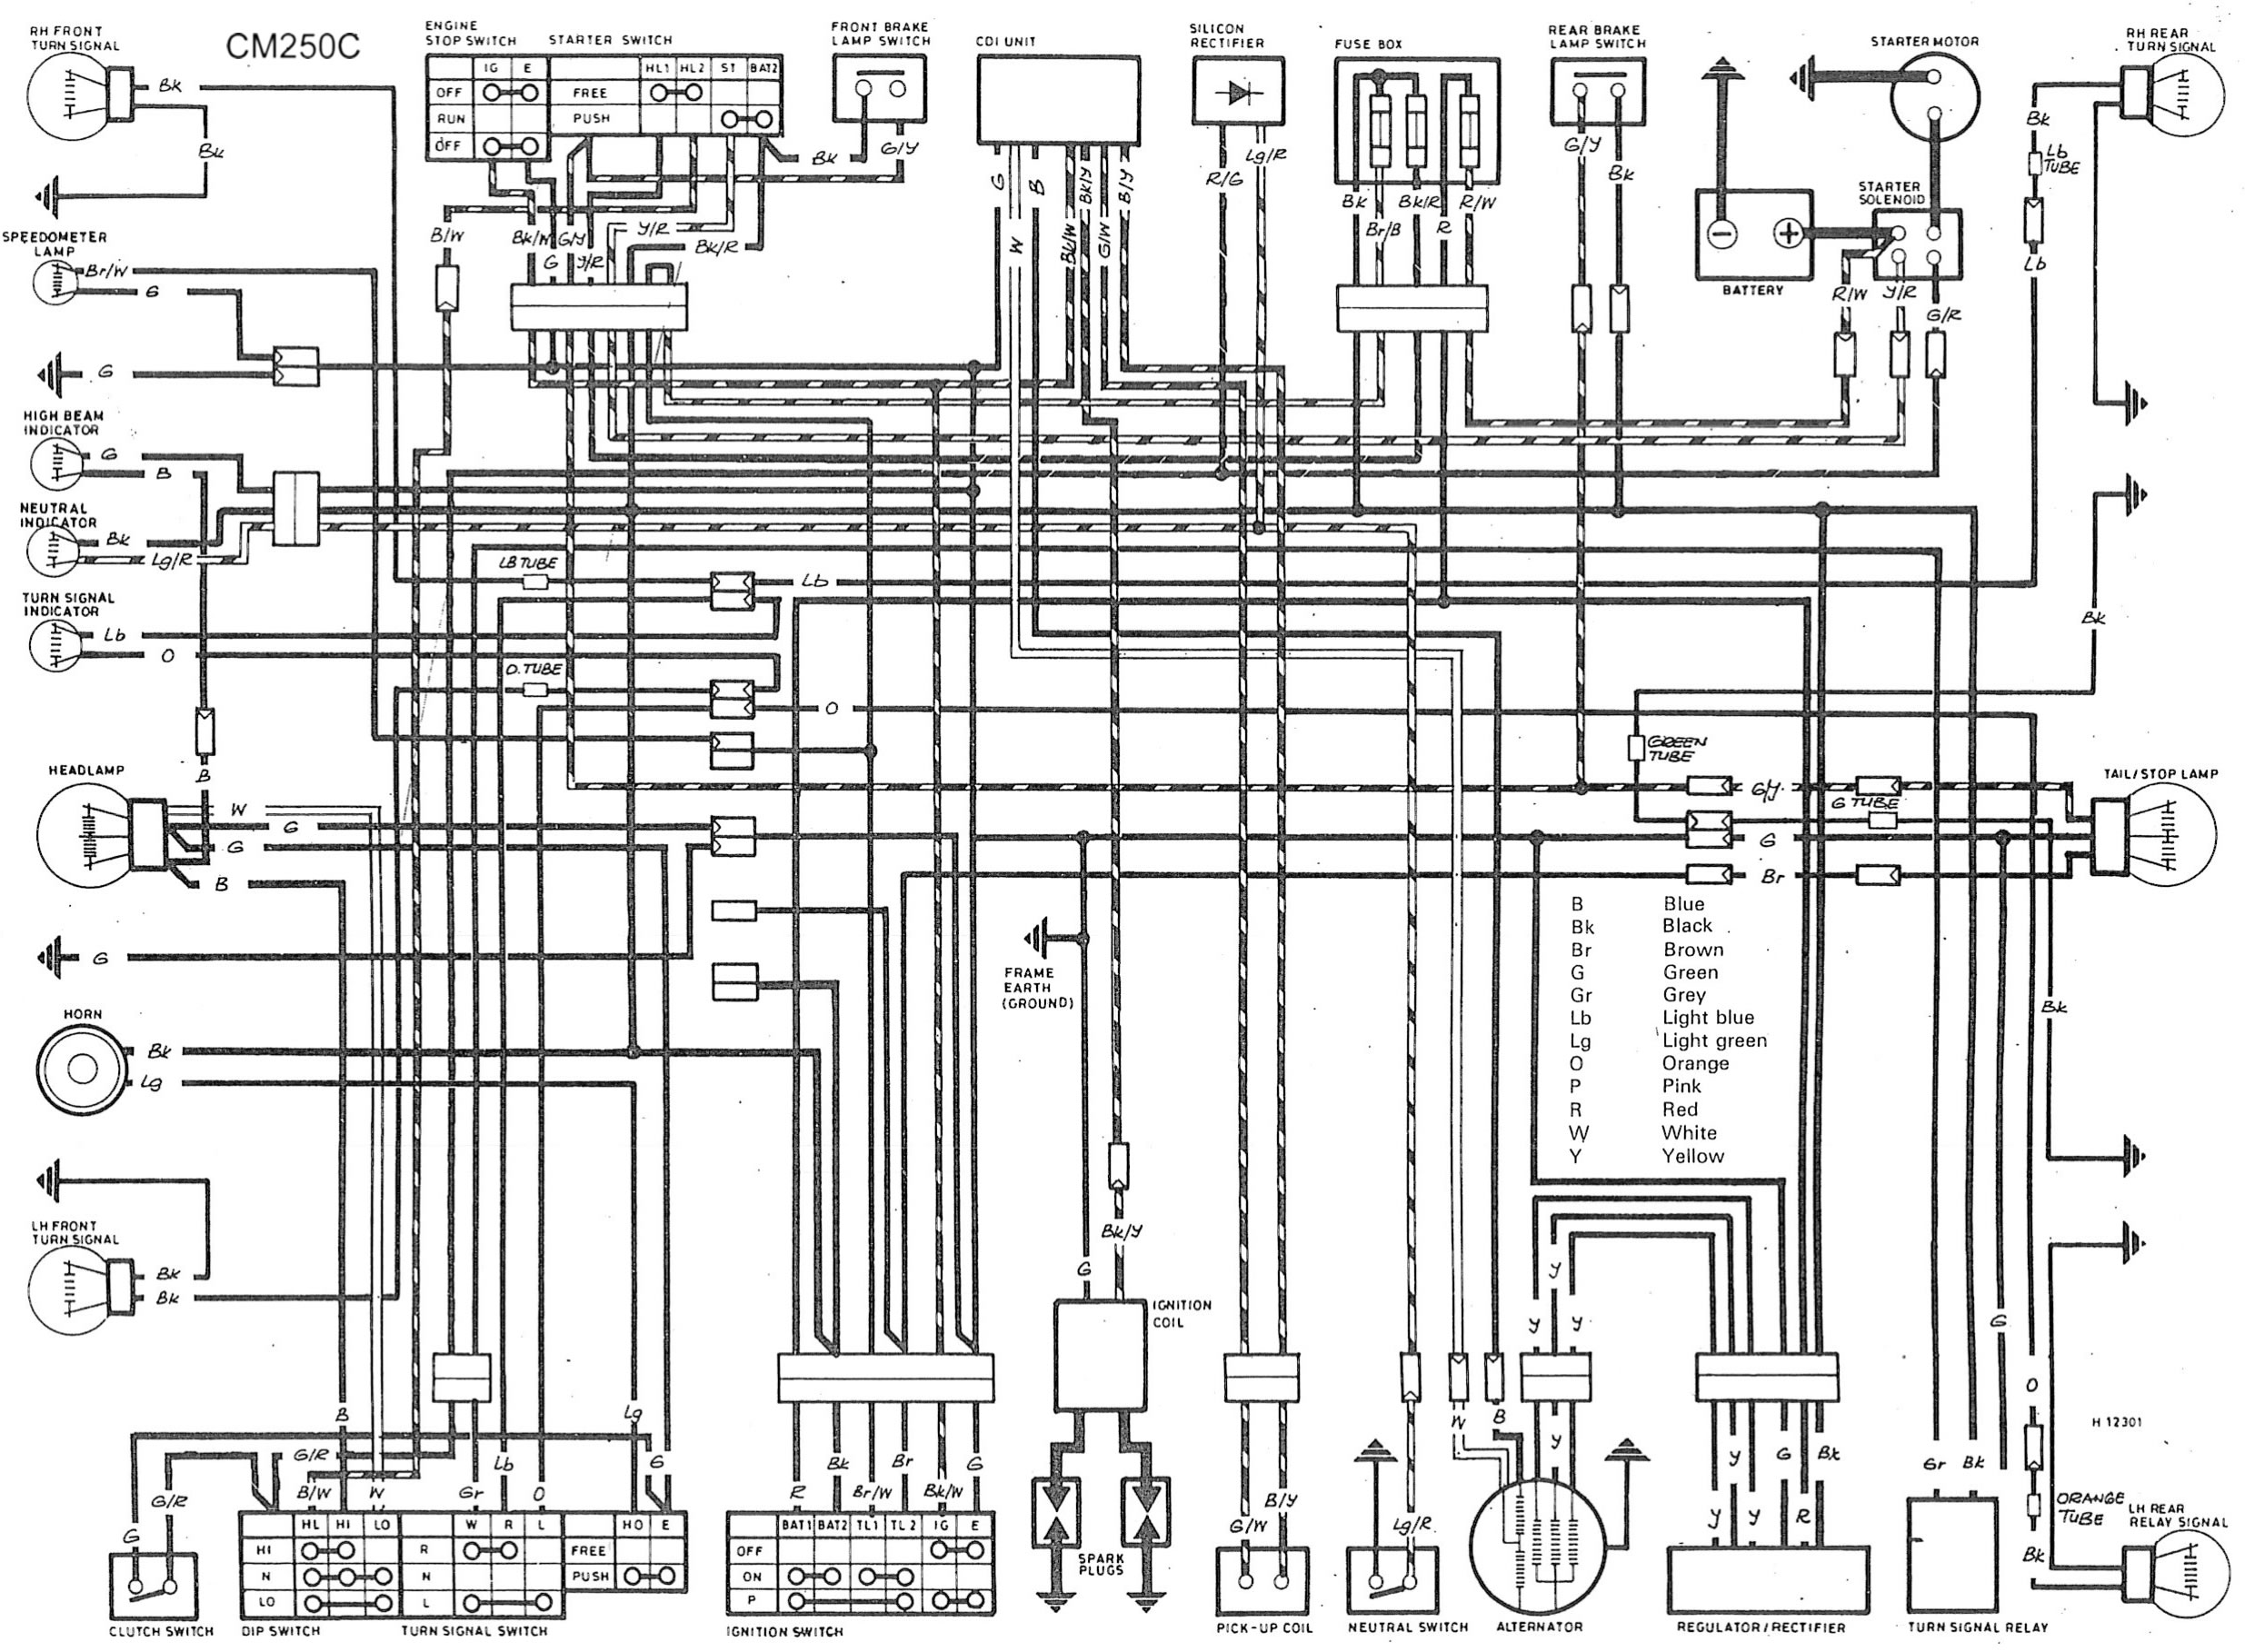 honda cb750 wiring schematic best wiring library Honda Rebel 250 cmx250c wiring diagram 1985 simple wiring diagram 2009 honda cmx250c rebel cmx250c wiring diagram